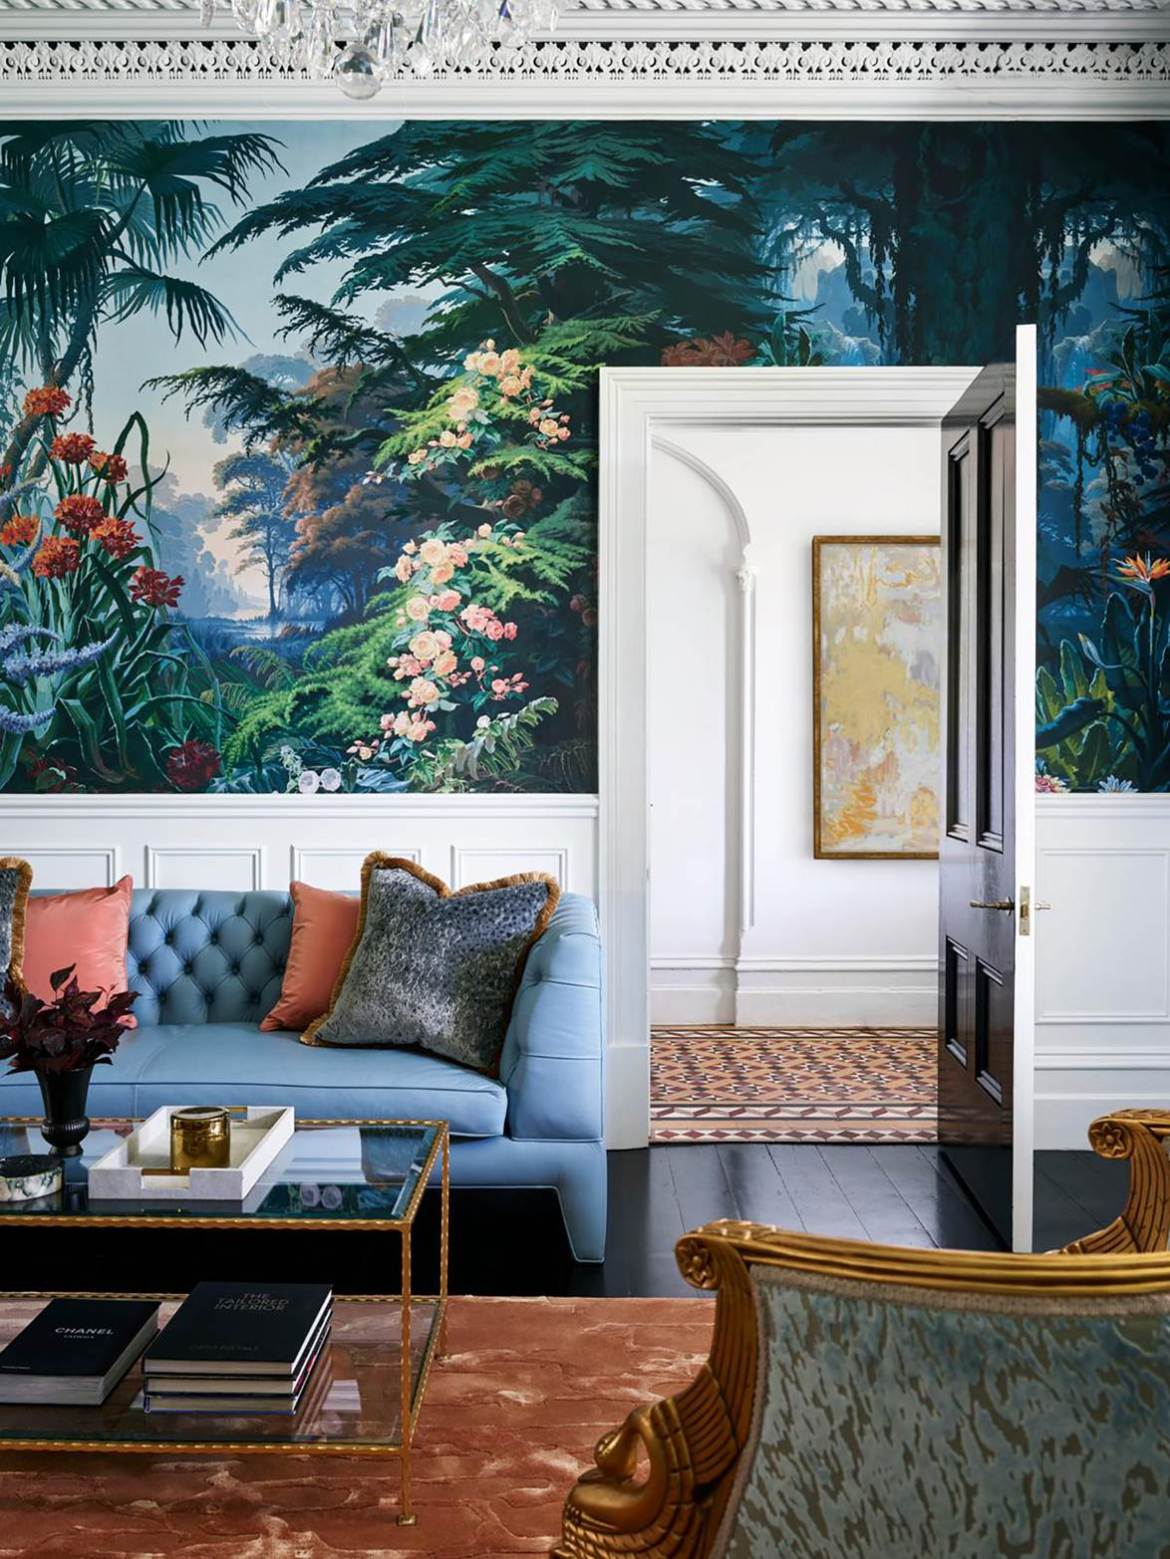 "Splendid vision from architect Daniel Boddam and interior designer Stacey Kouros for transformed a tired [1880s terrace](https://www.homestolove.com.au/glamorous-makeover-of1880s-terrace-21031|target=""_blank"") in Sydney into a glorious, glamorous and comfortable home.The feature wallpaper is the masterstroke in the design of the formal living room."